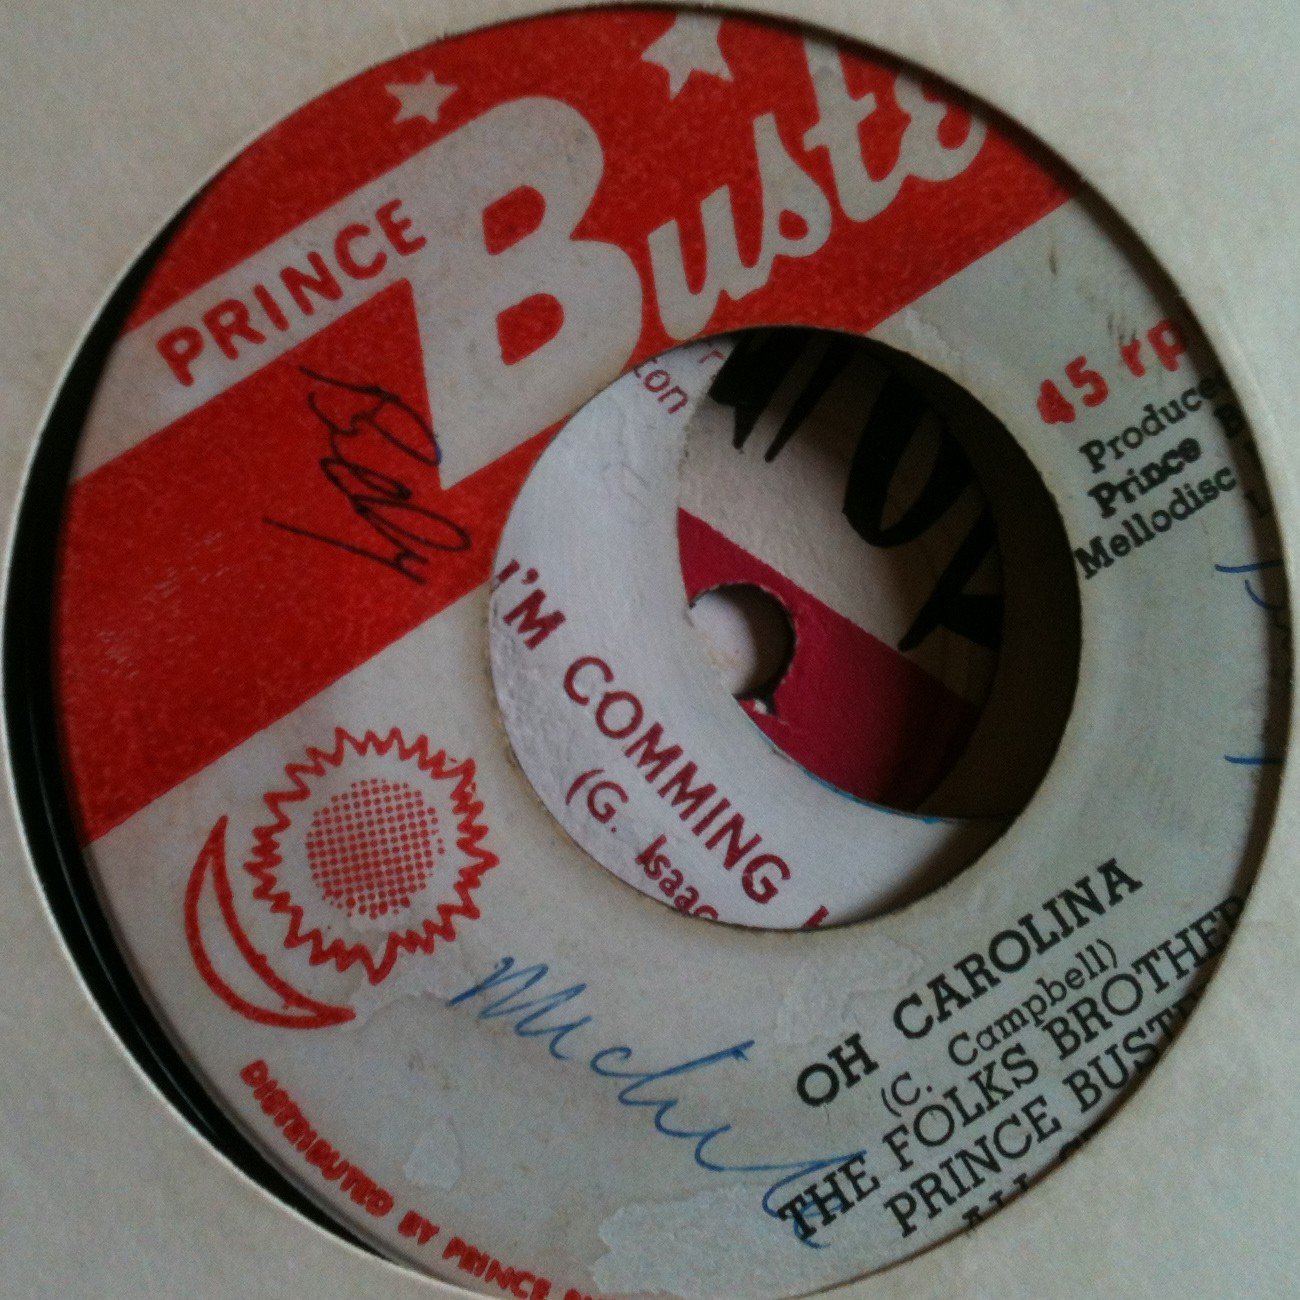 Nothing but good old original records. Some crackle, yes, but ehi, they are really OLD! Enjoy. DOWNLOAD THE PODCAST (right click to save) Folk Brothers – Oh Carolina PRINCE BUSTER […]